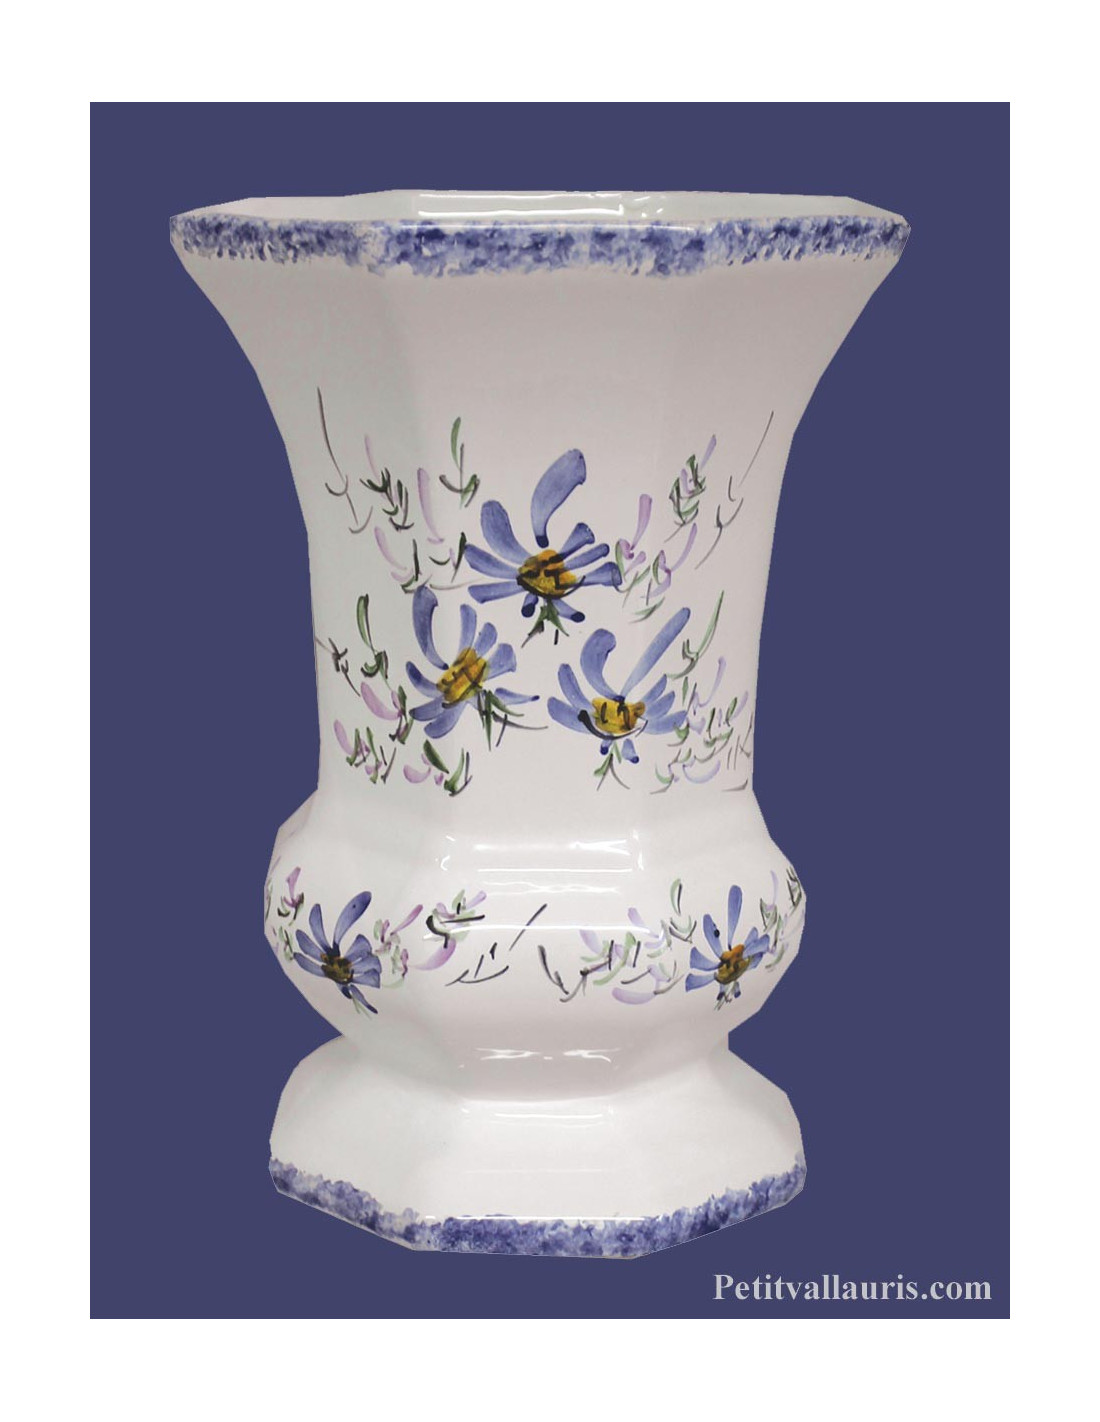 vase mod le m dicis en faience artisanale au d cor fleurs de couleur bleues fabriqu dans le sud. Black Bedroom Furniture Sets. Home Design Ideas